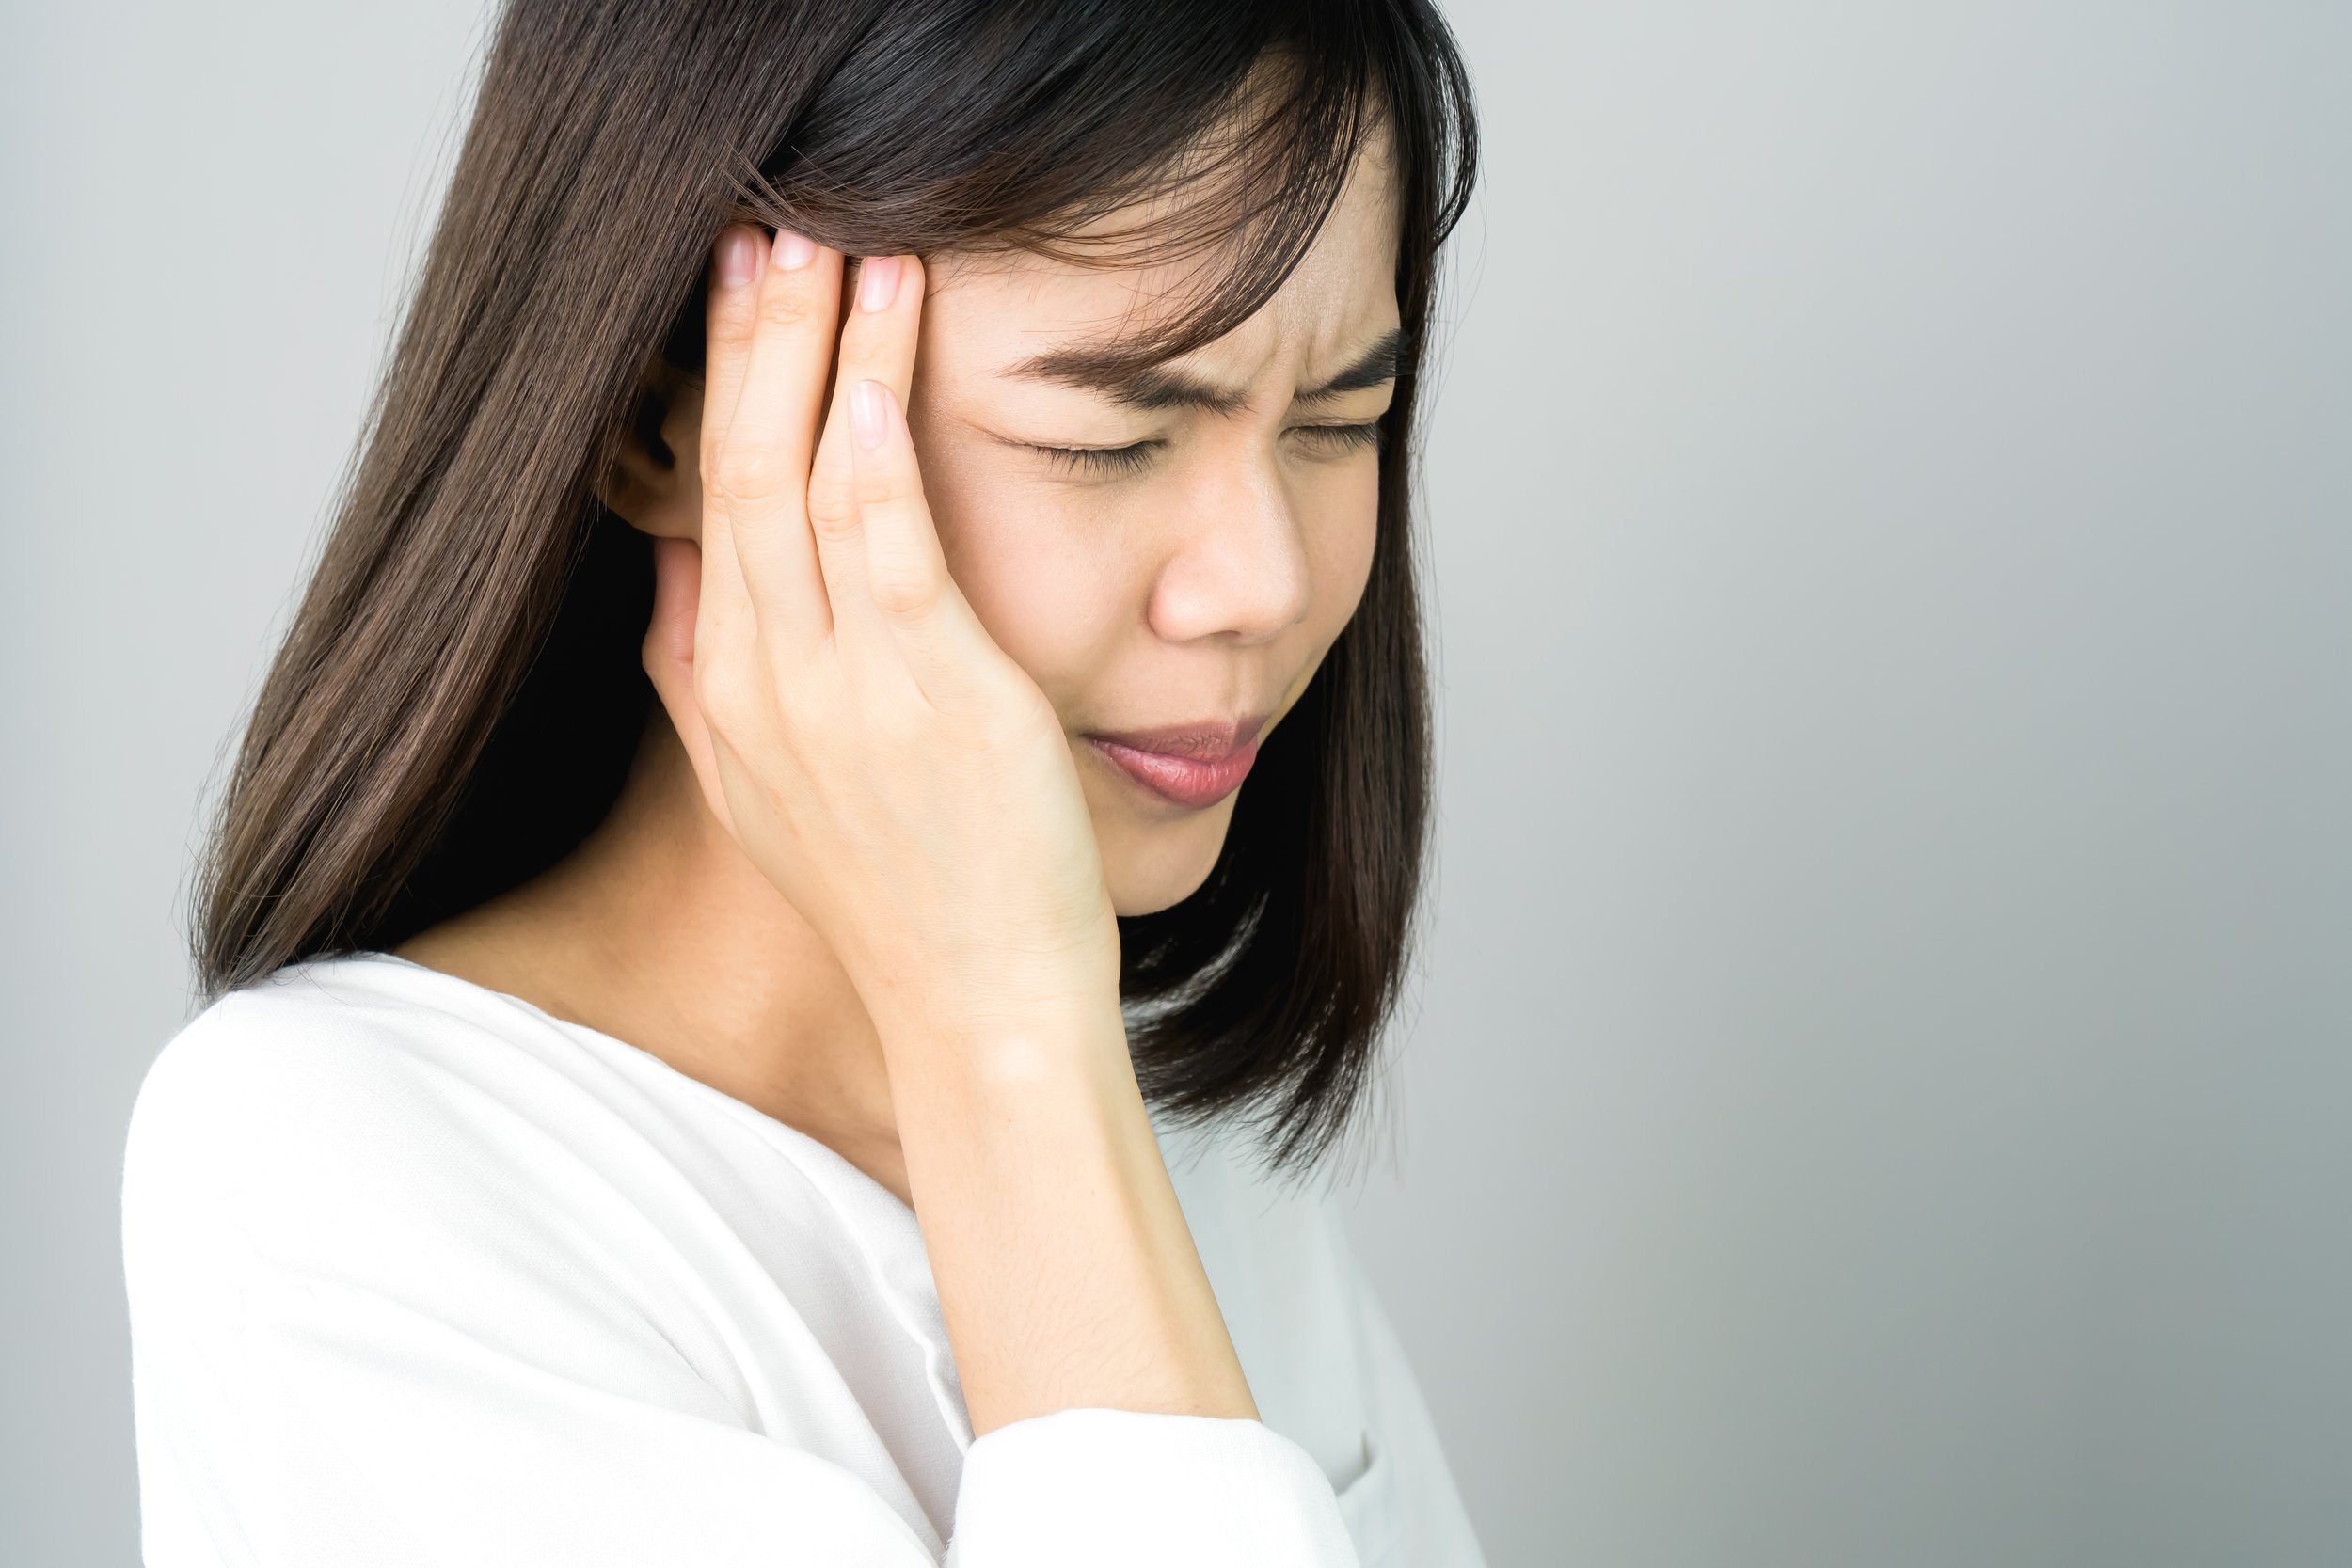 Patient showing signs of ongoing headaches